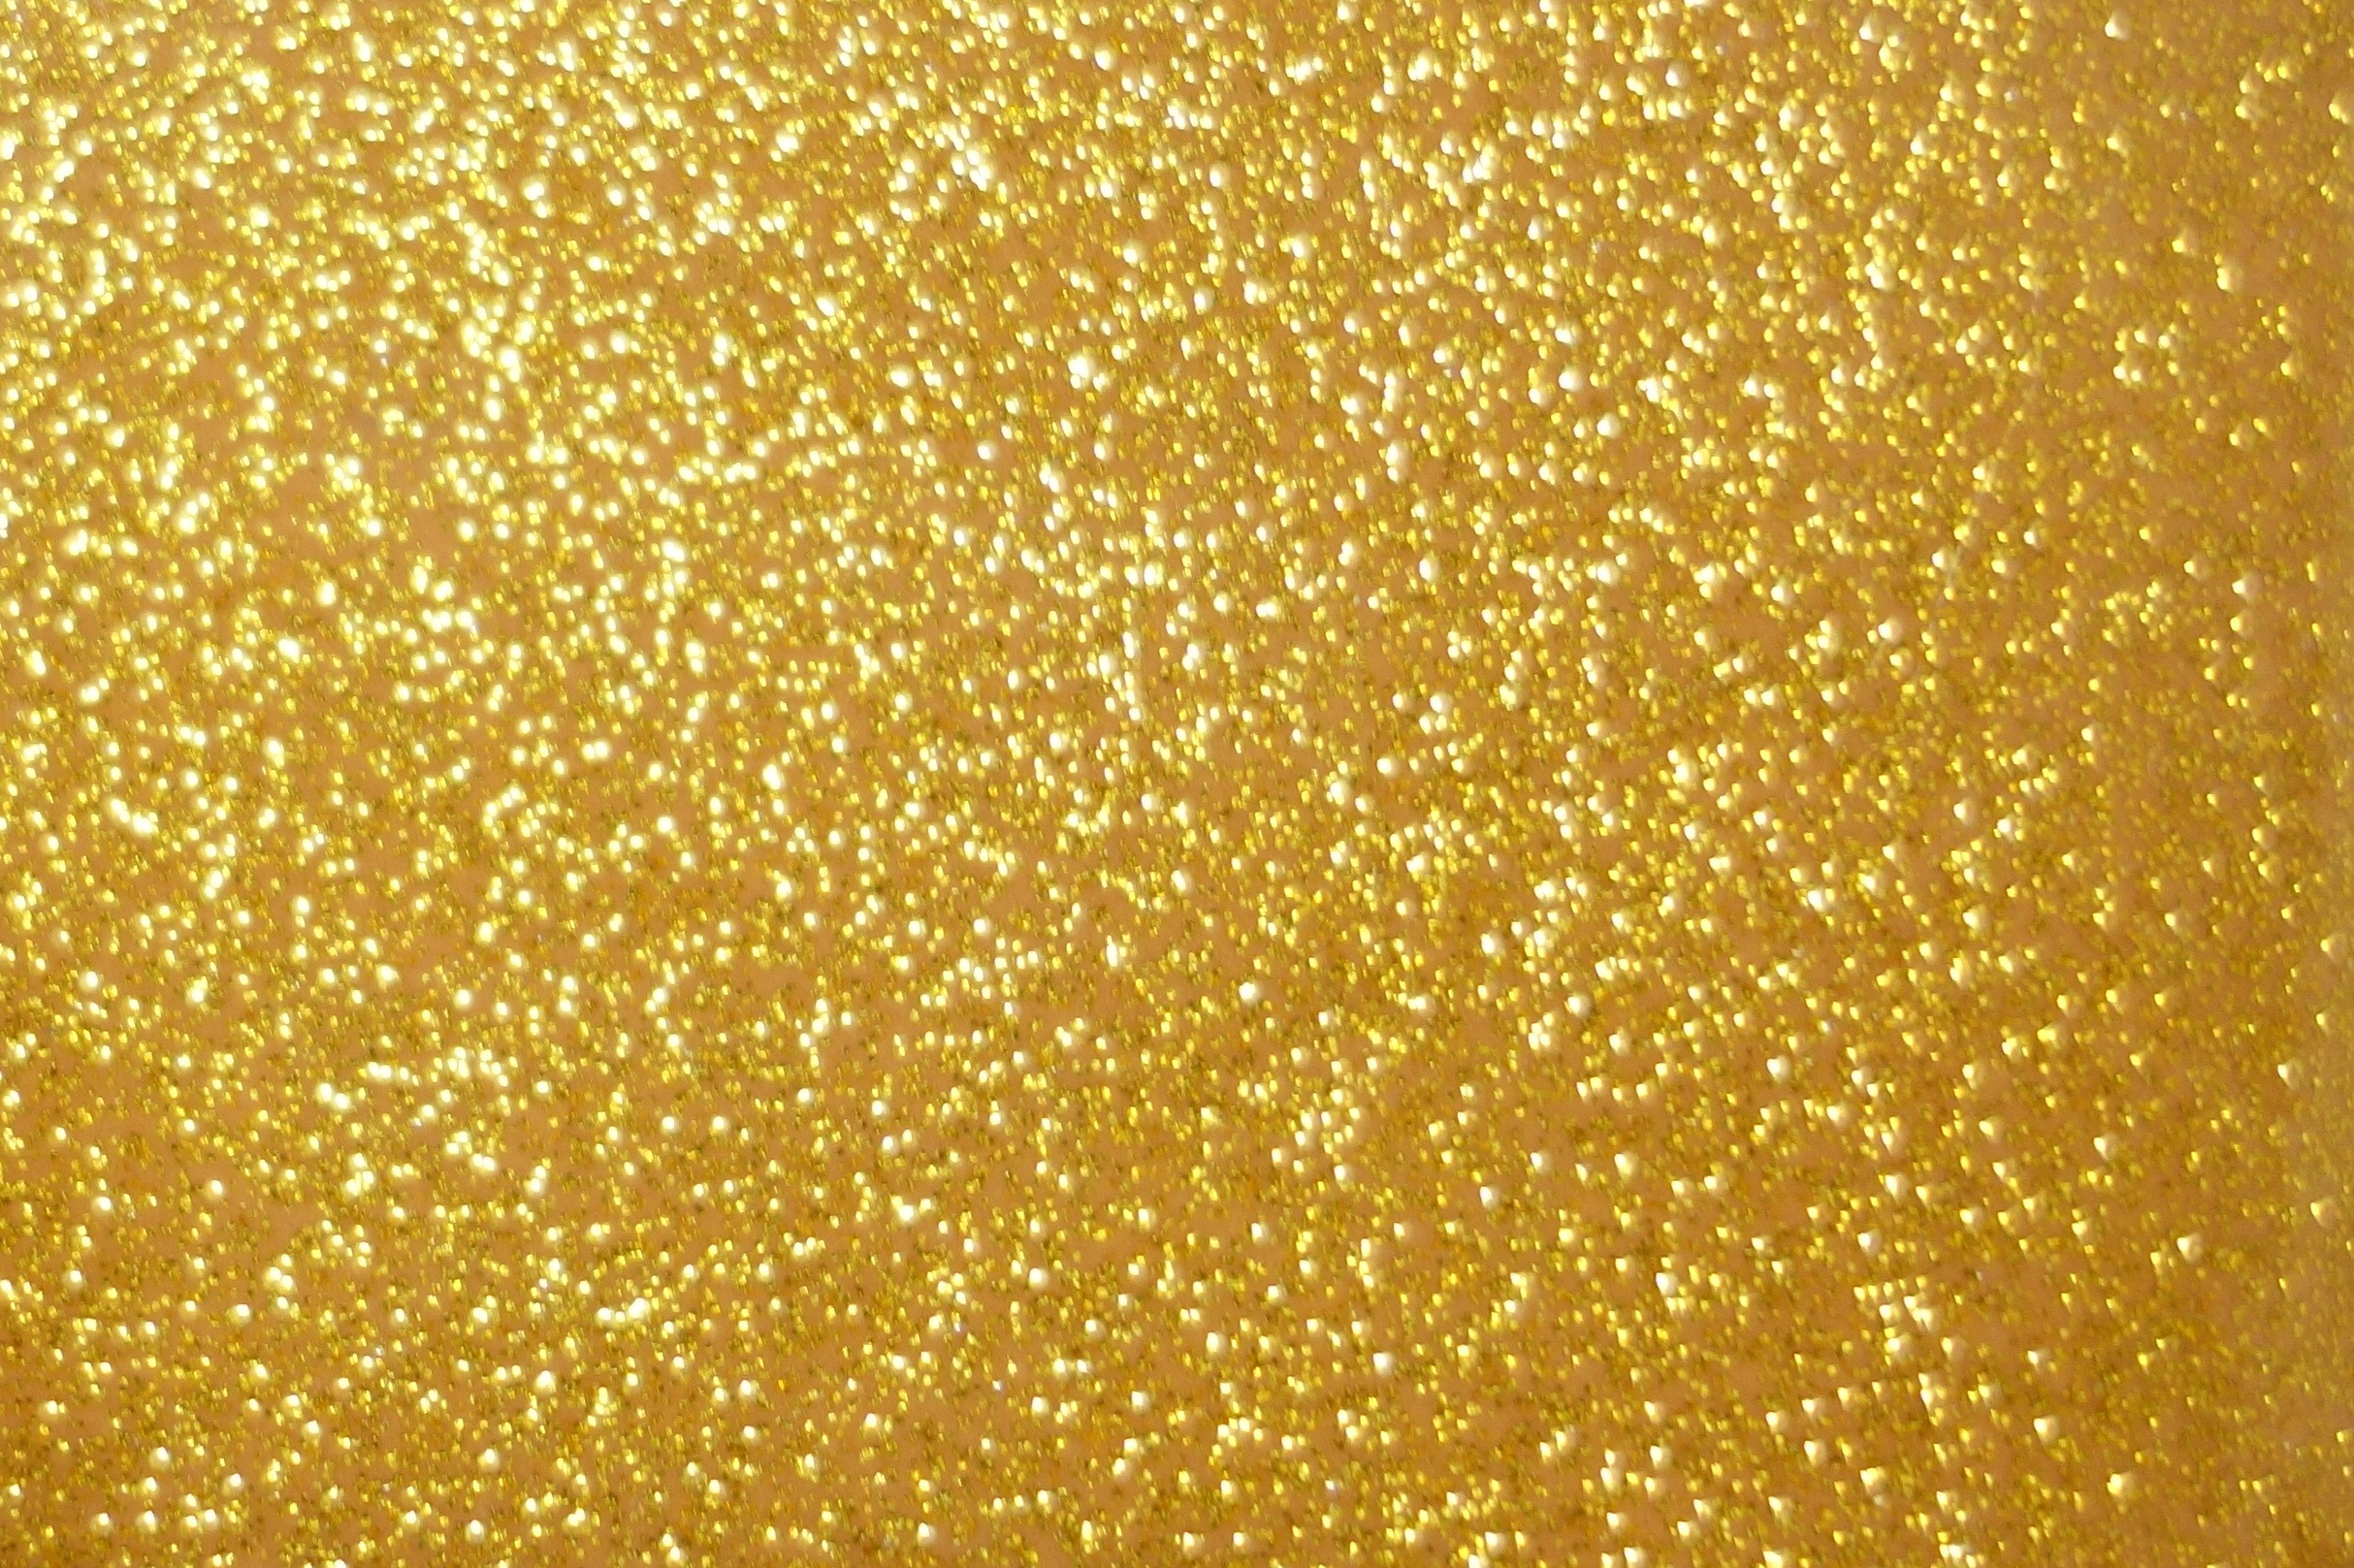 Car Wallpaper Iphone X Gold Sparkle Background 183 ① Download Free Awesome Full Hd